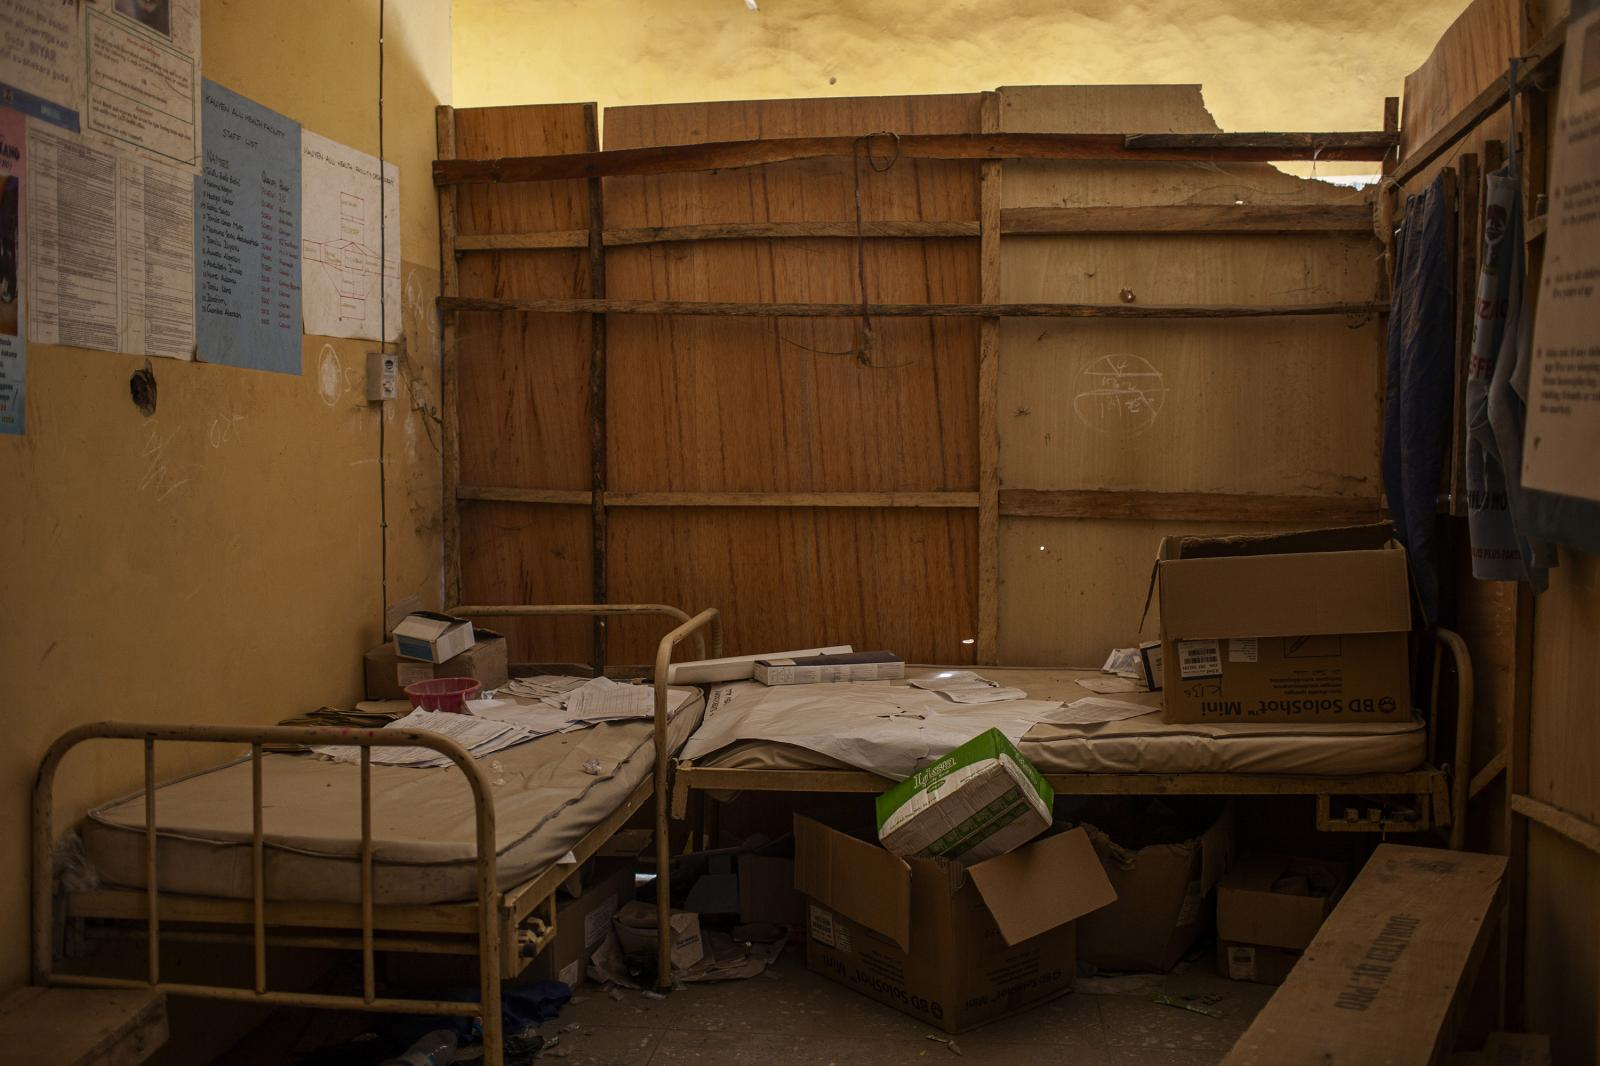 Detail of one health center attacked on February 8 by Boko Haram in 2013 in Kano. Nine polio immunization workers were shot on February 8 in 2013. Northern Nigeria became a polio hot spot in 2003 when waves of rumors began spreading about the vaccine: that it sterilized Muslim girls, that it contained pork products and that it contained the virus that causes AIDS. The governor of Kano, a northwestern state, stopped vaccinations for a year, and a local polio strain spread, first to 10 other African countries and then, through pilgrims, to Mecca in Saudi Arabia, and to Yemen and Indonesia. Kano, Nigeria 2014. Diego Ibarra Sánchez